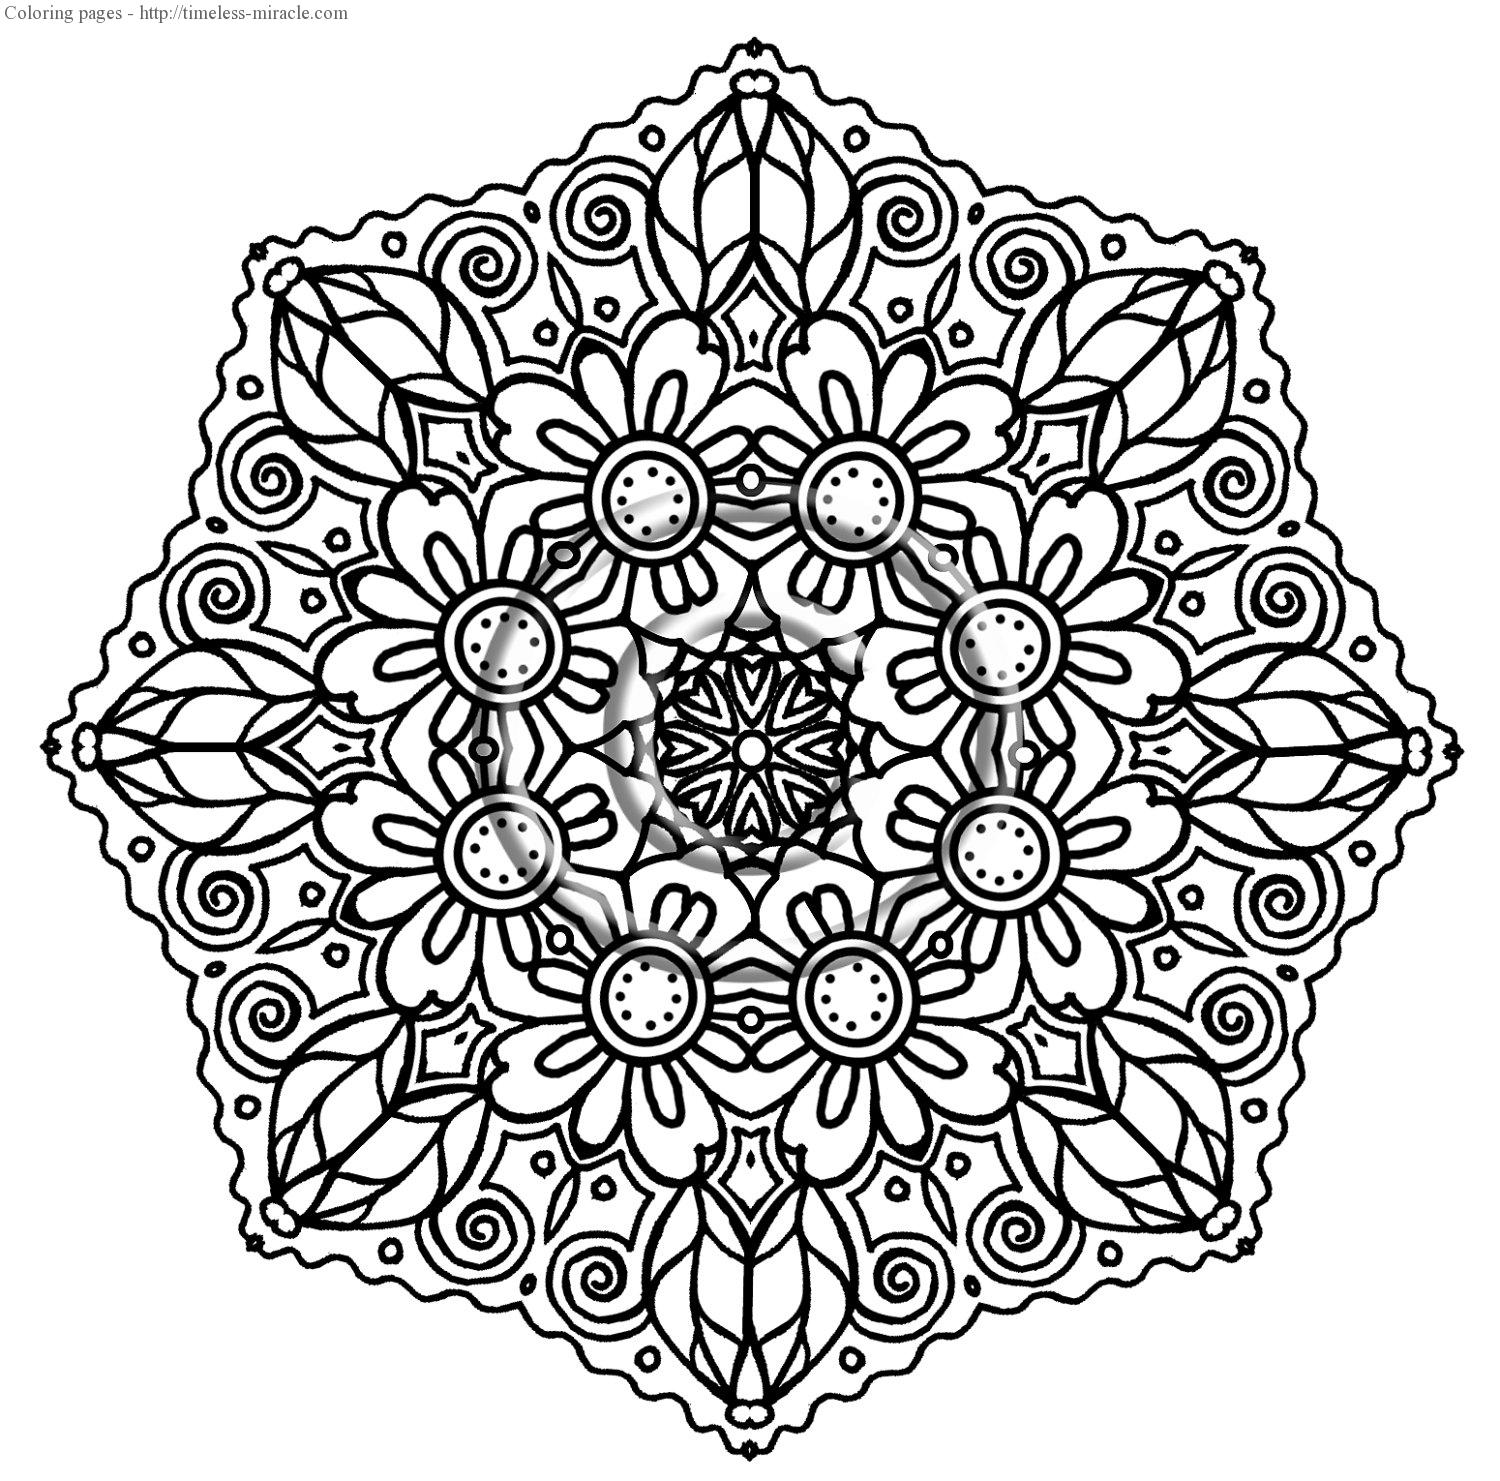 designs for coloring floral pattern coloring page free printable coloring pages designs coloring for